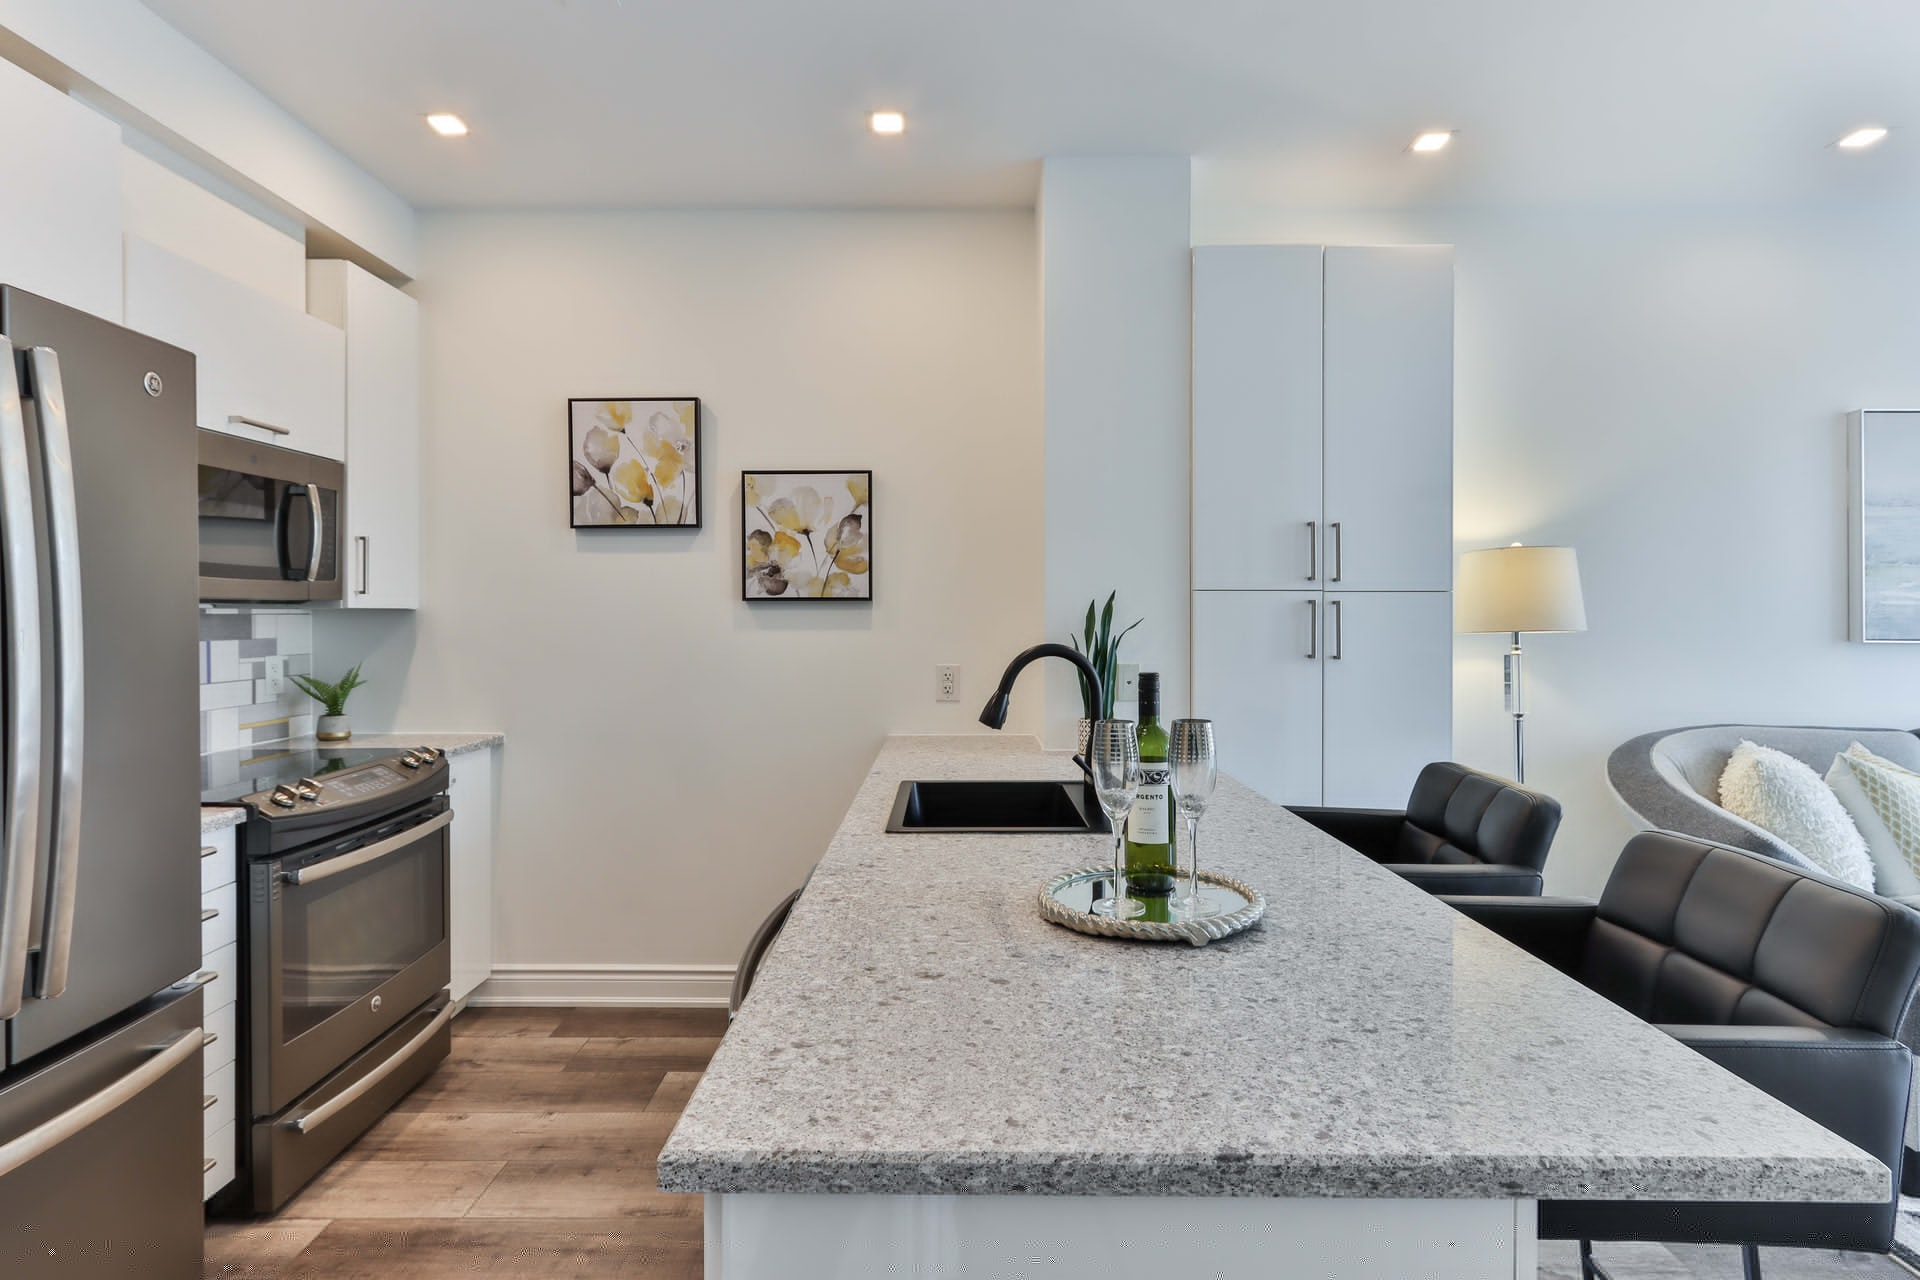 Emerging Kitchen and Bathroom Trends for a Cleaner and Safer Home